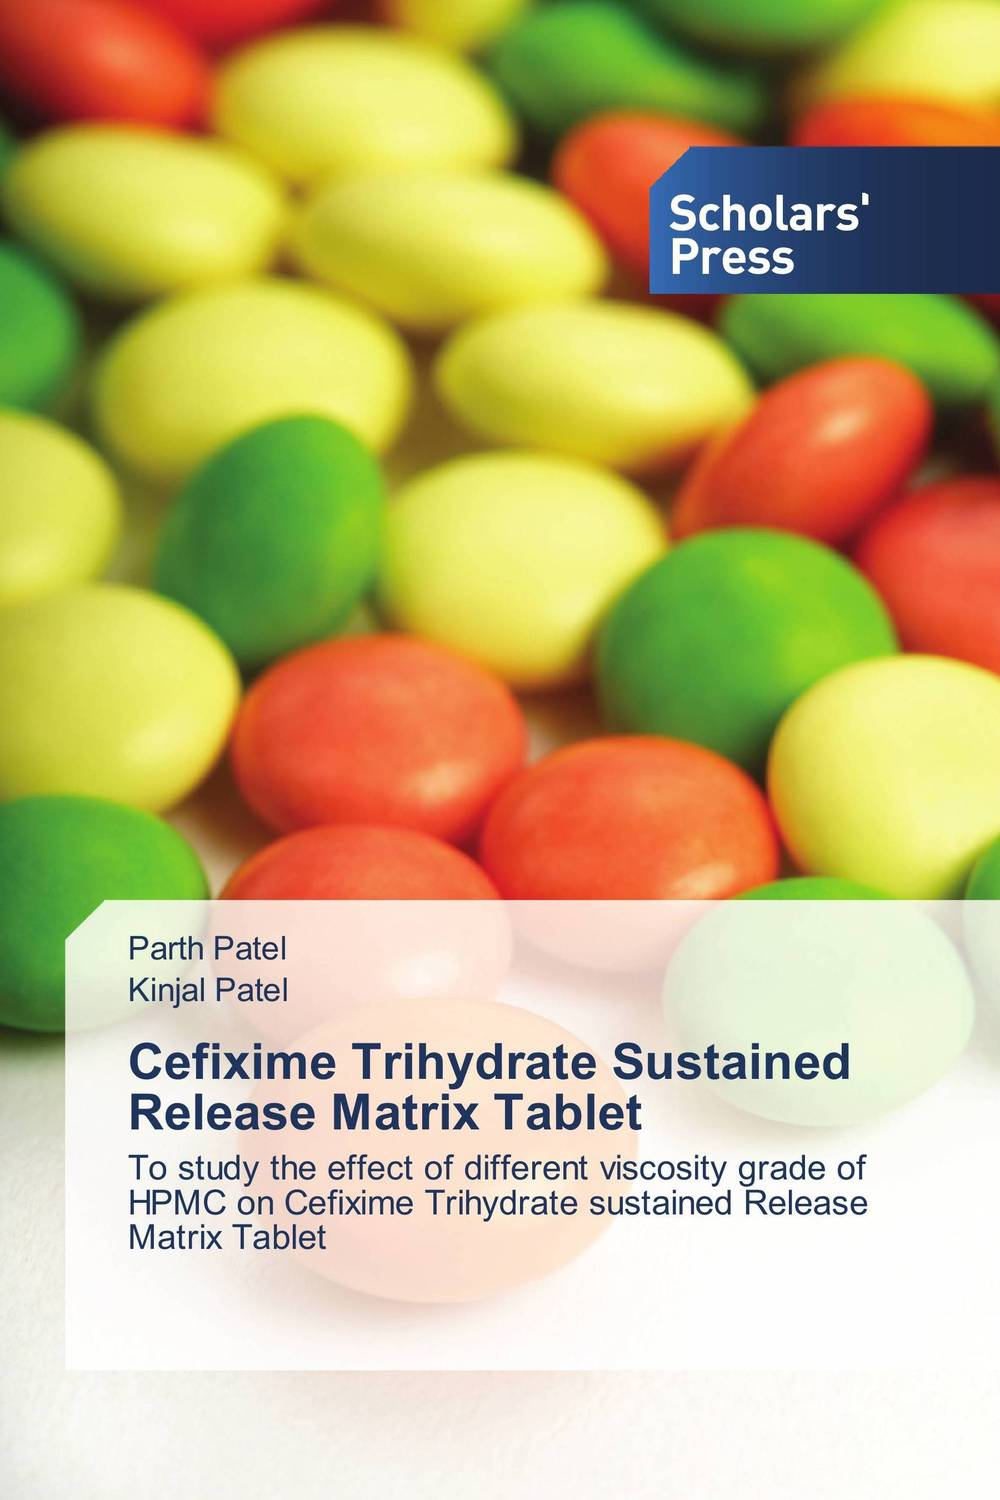 Cefixime Trihydrate Sustained Release Matrix Tablet the release